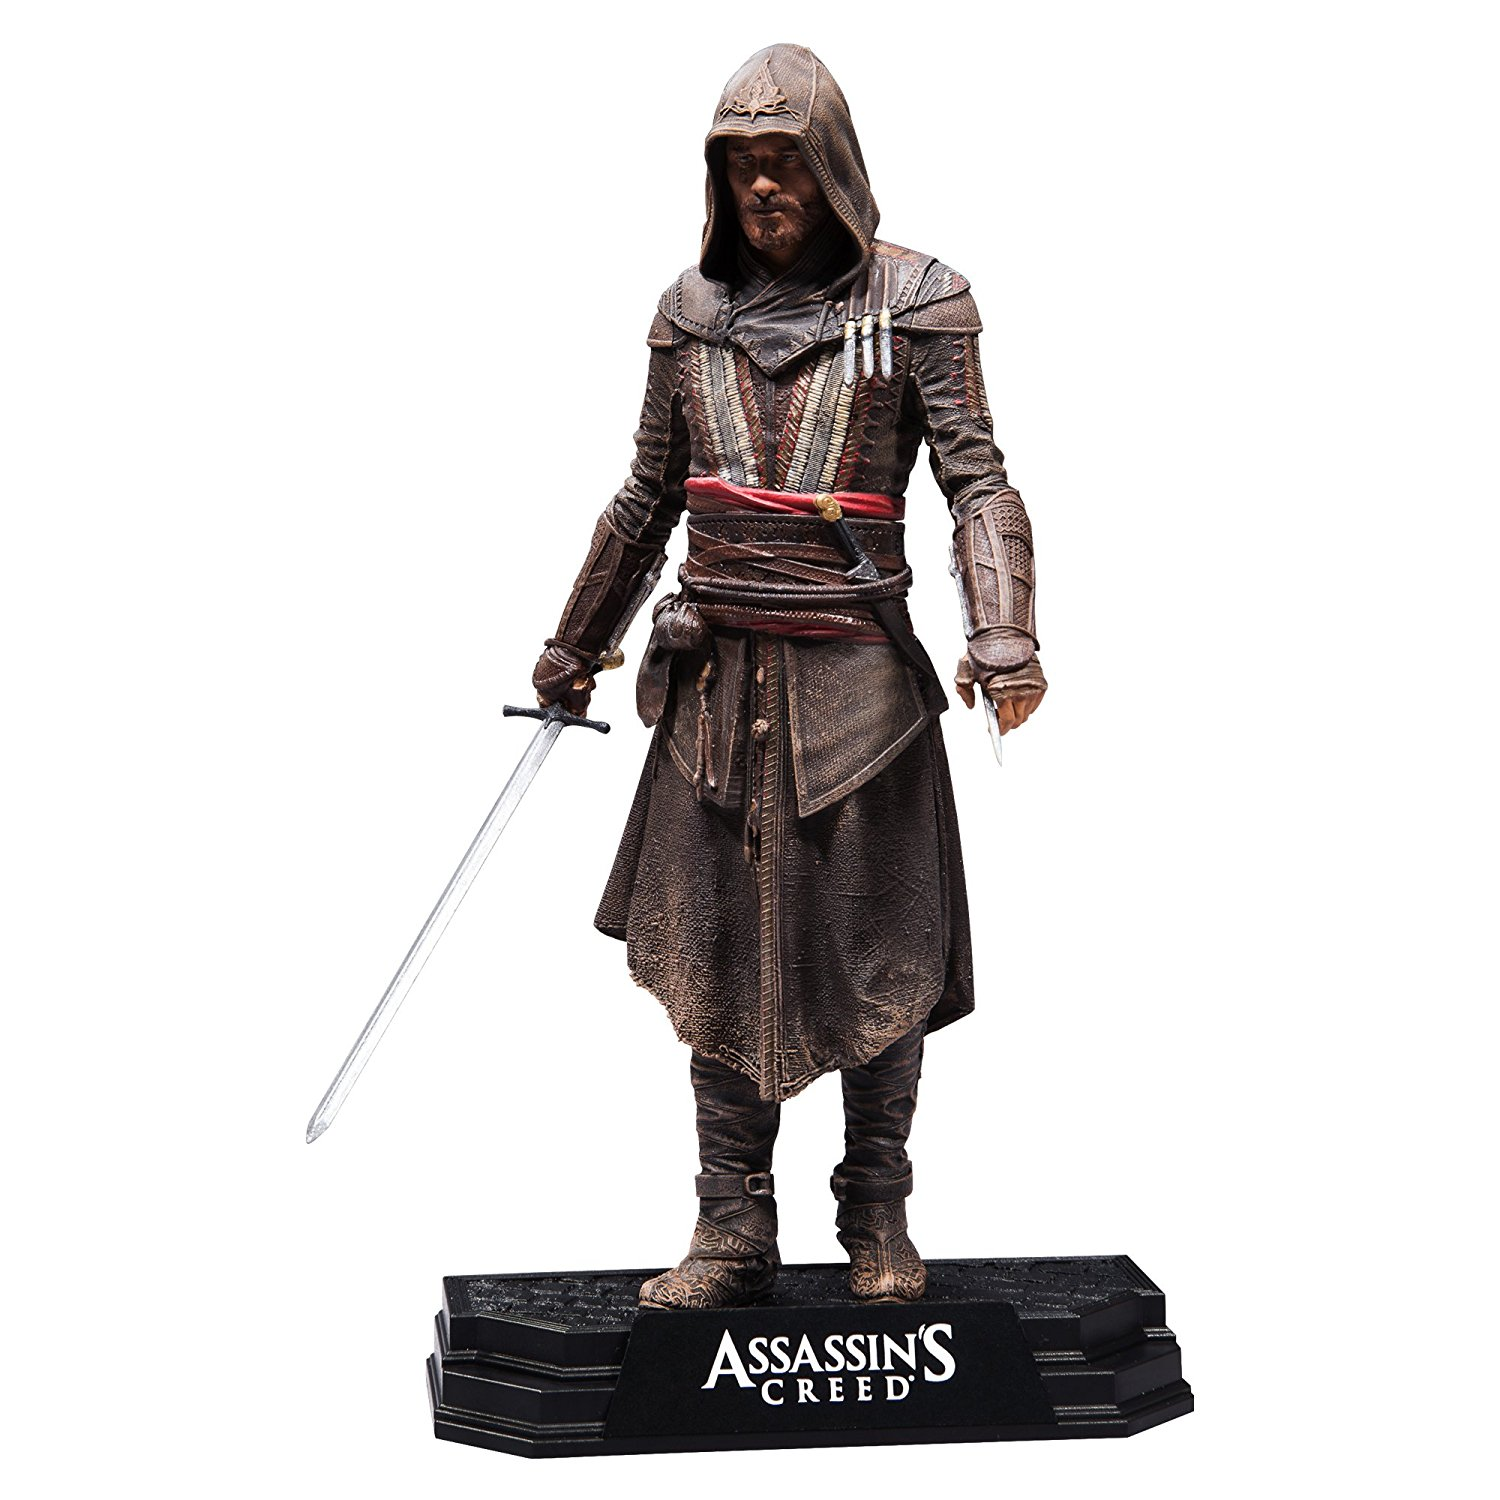 "Toys Assassin's Creed Movie Aguilar 7"" Collectible Action FigureFigure comes armed with an assassin sword and extended Hidden Blade By McFarlane"